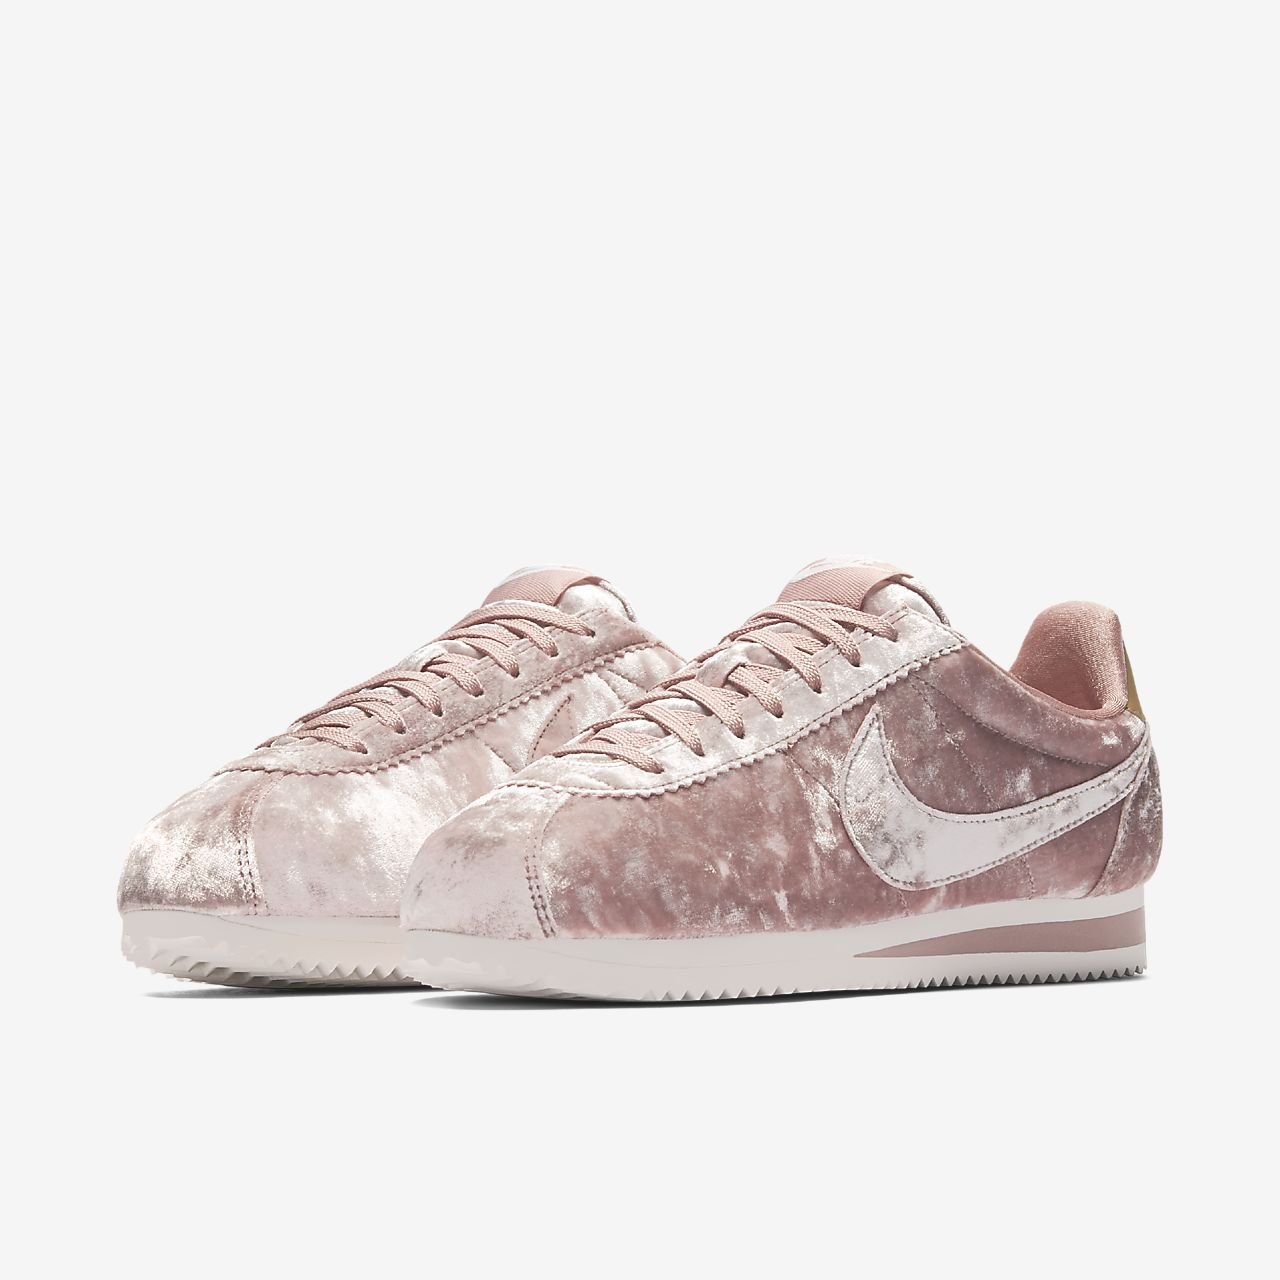 Most Popular Shoes Nike Classic Cortez crushed velvet sneakers Black Women